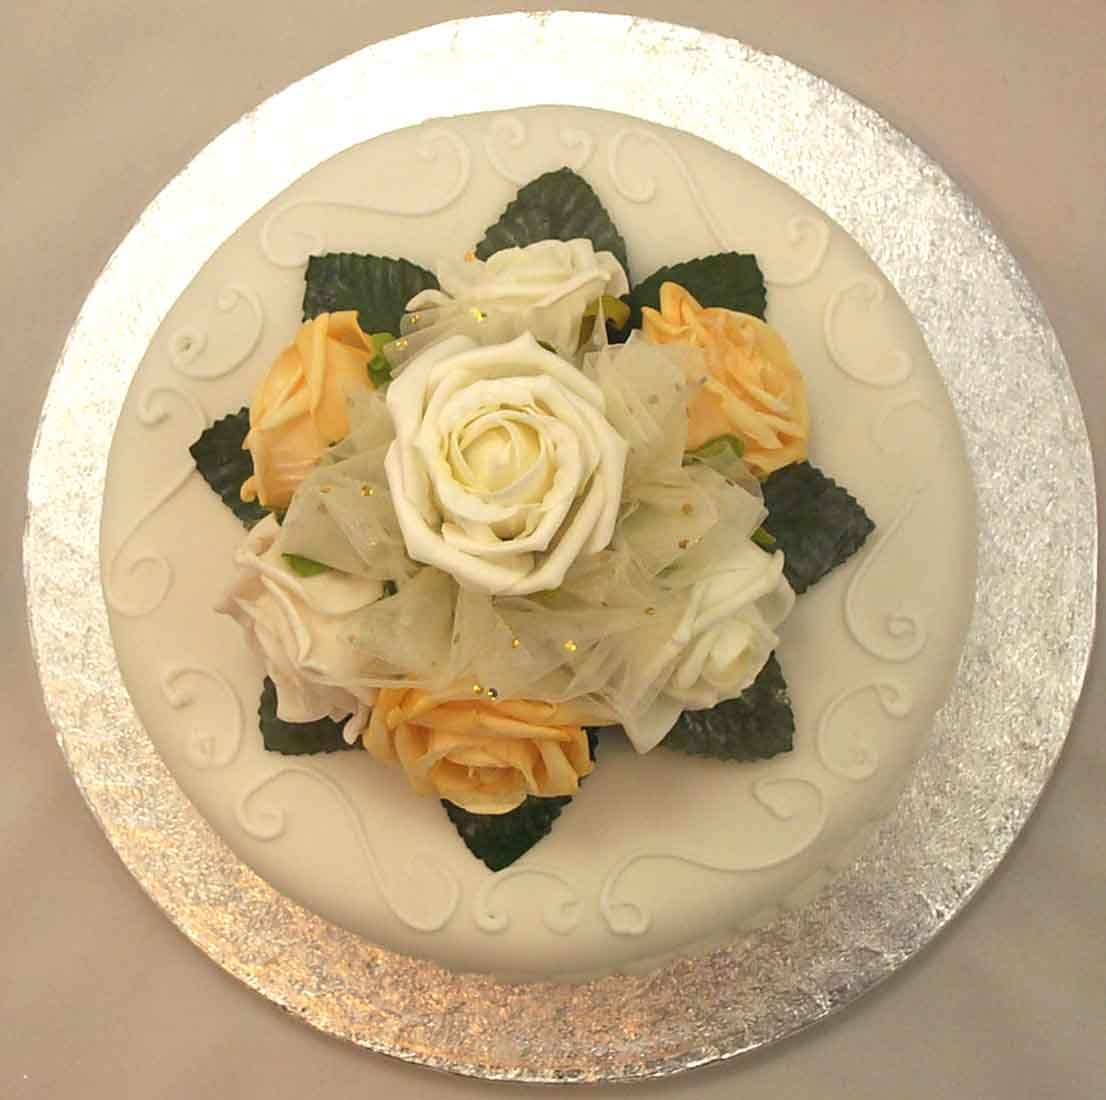 Cake Decorations - Ivory & Gold Rose Organza Cake Topper ...